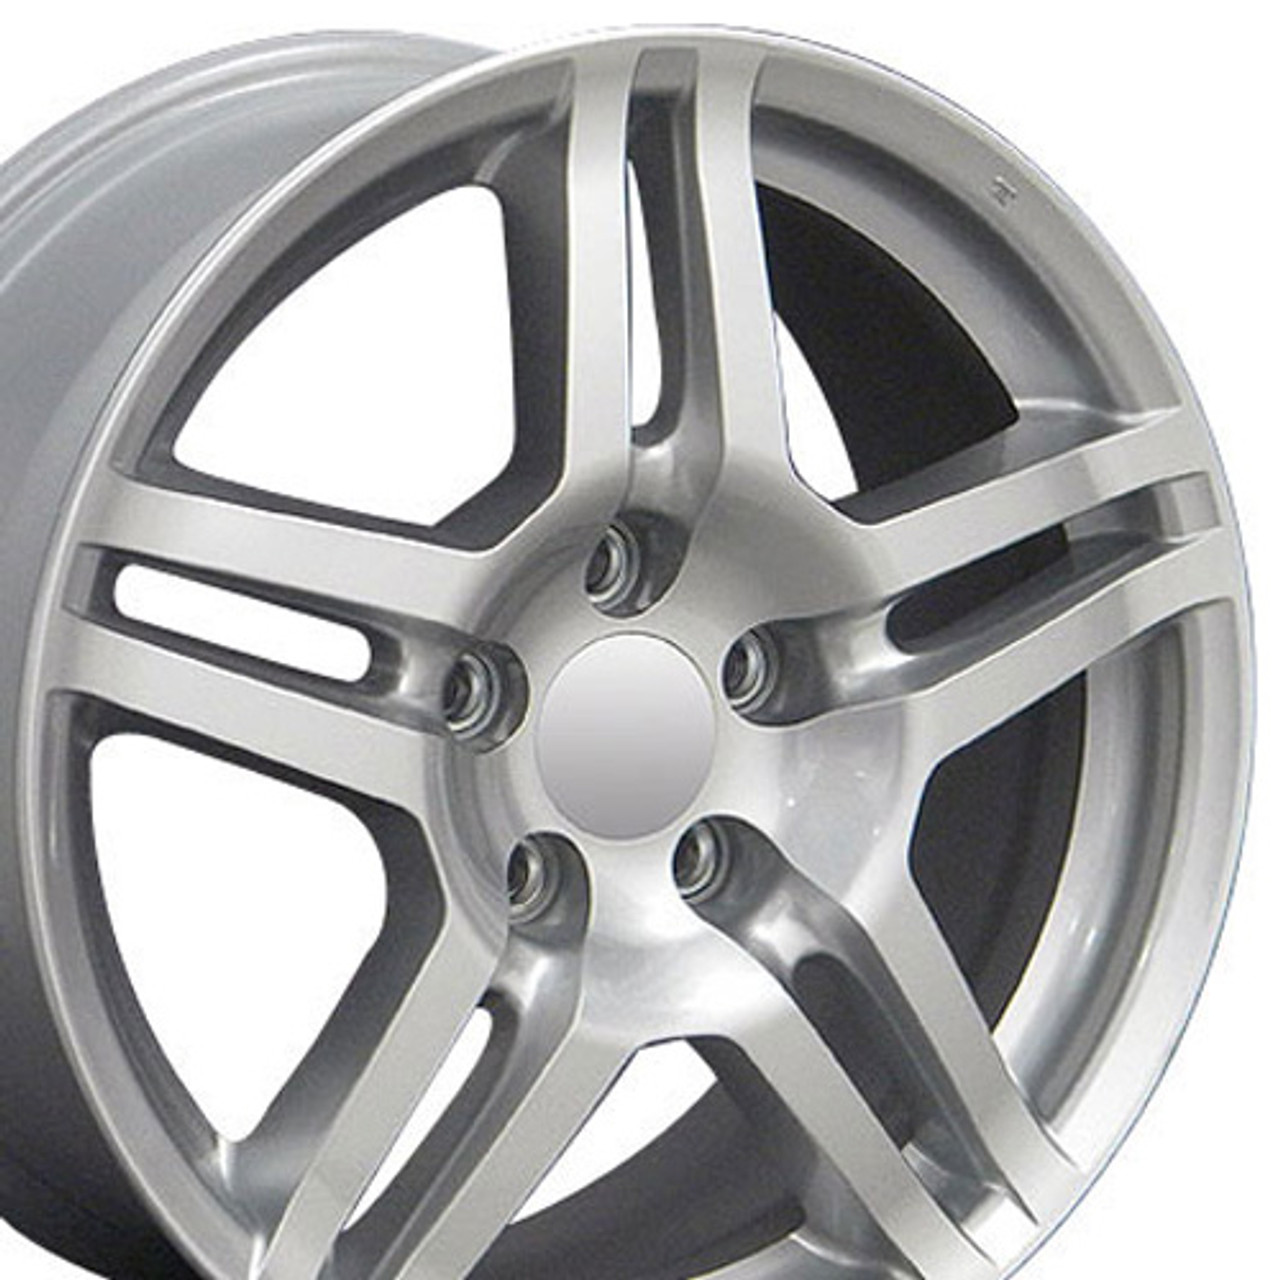 Acura Tl Wheels >> 17 Fits Acura Tl Wheels Silver Set Of 4 17x8 Rims Hollander 71762